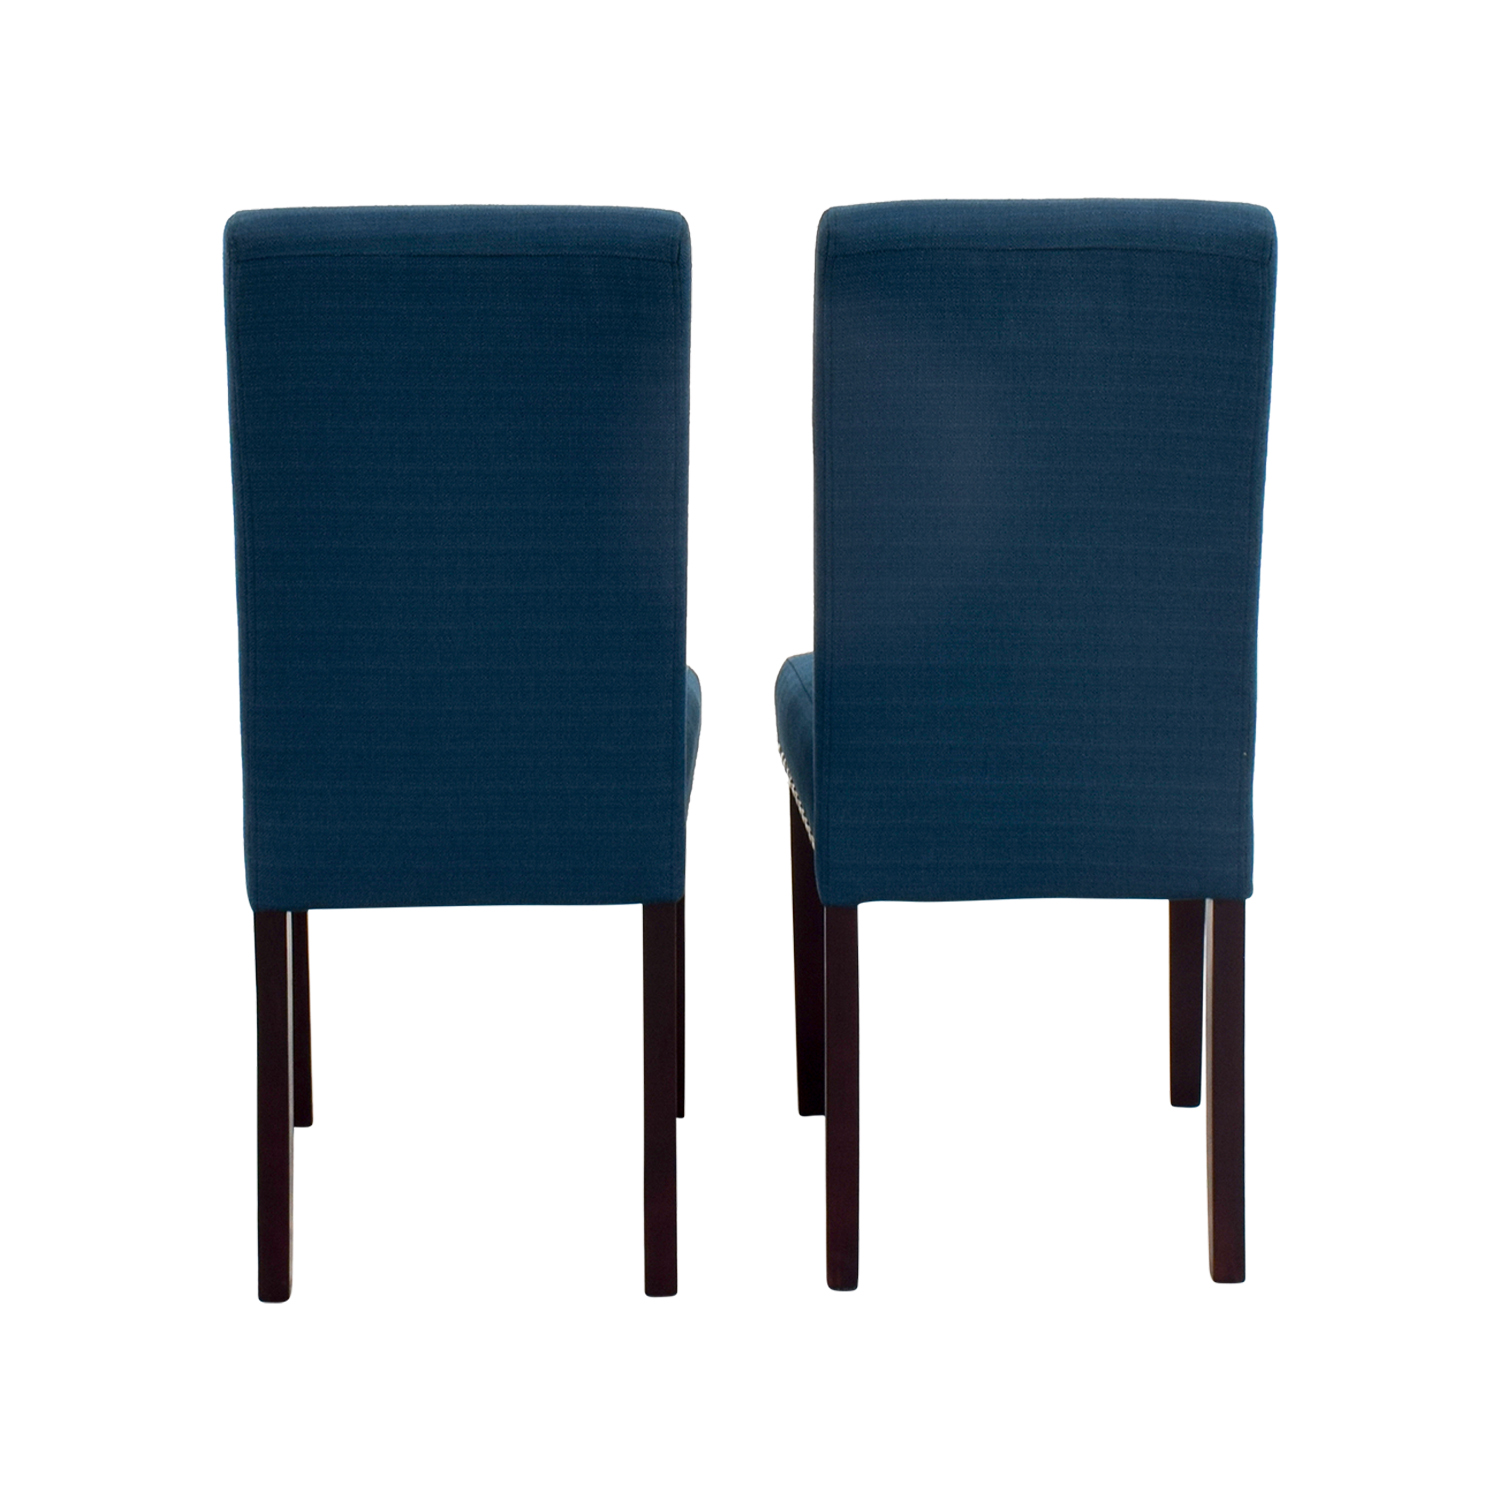 Modway Madrid Nail Head Teal Dining Chairs / Dining Chairs